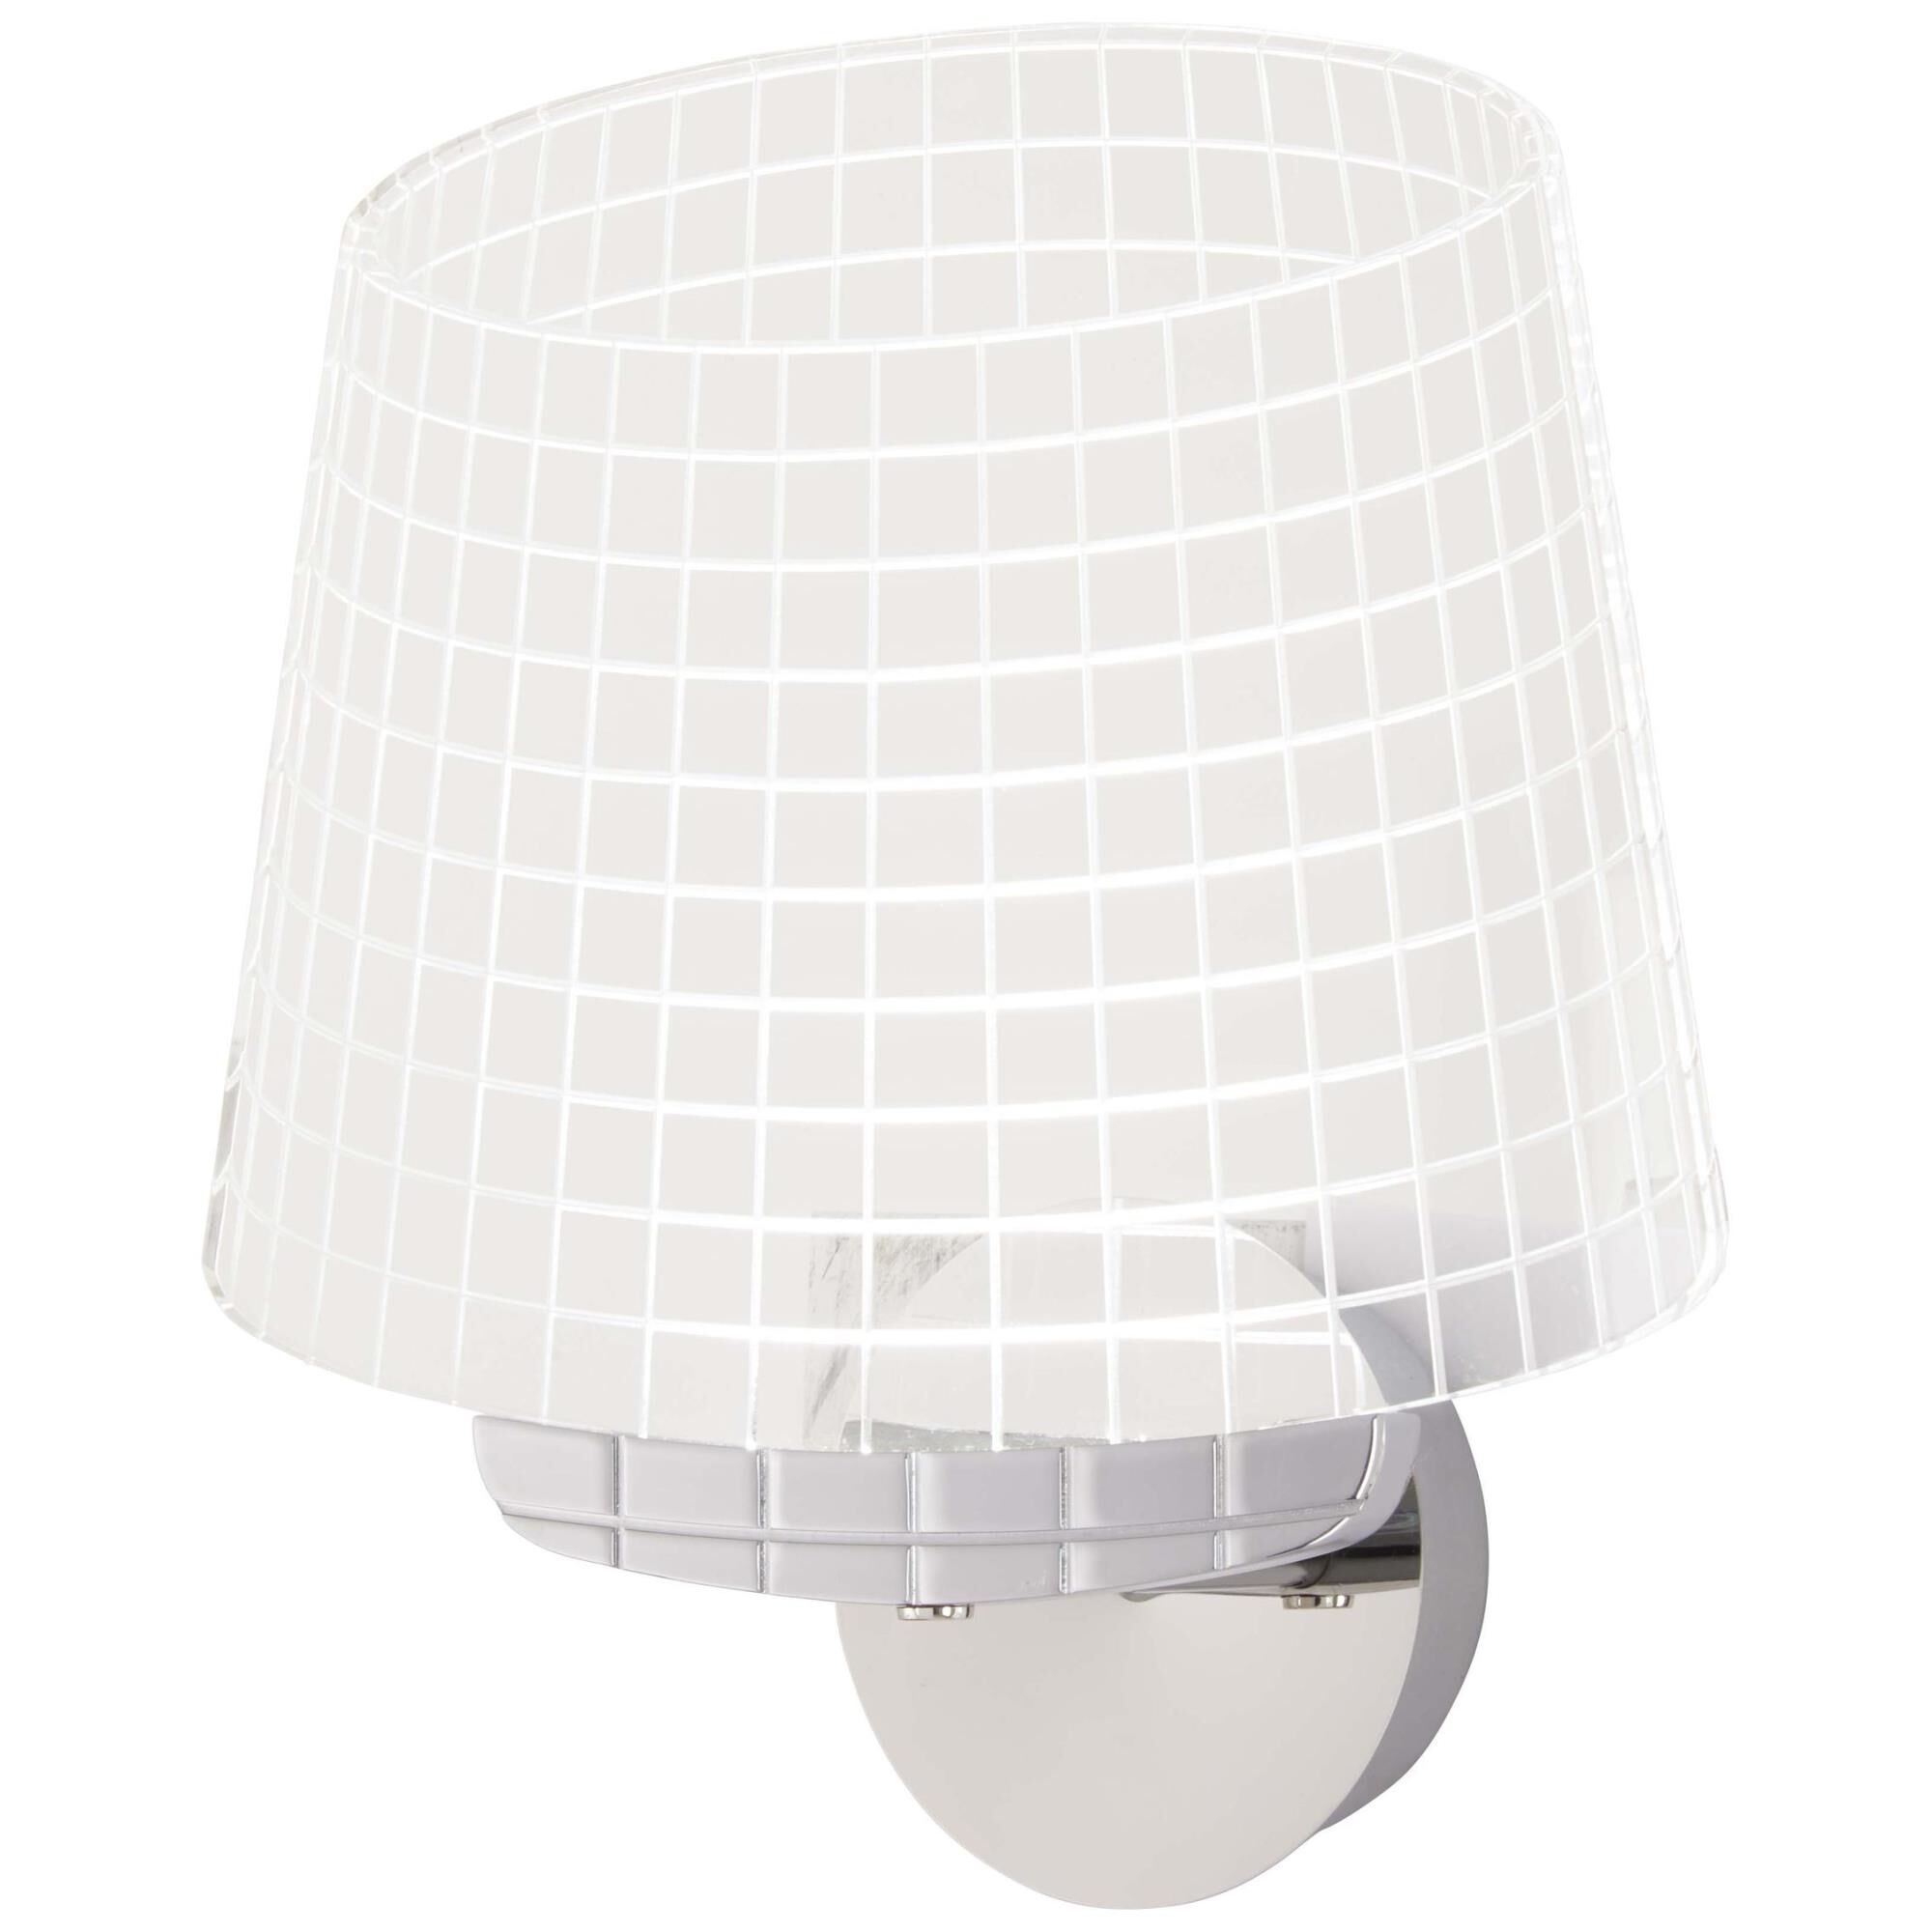 Kovacs 12 Inch Led Wall Sconce - P1650-077-l - Transitional